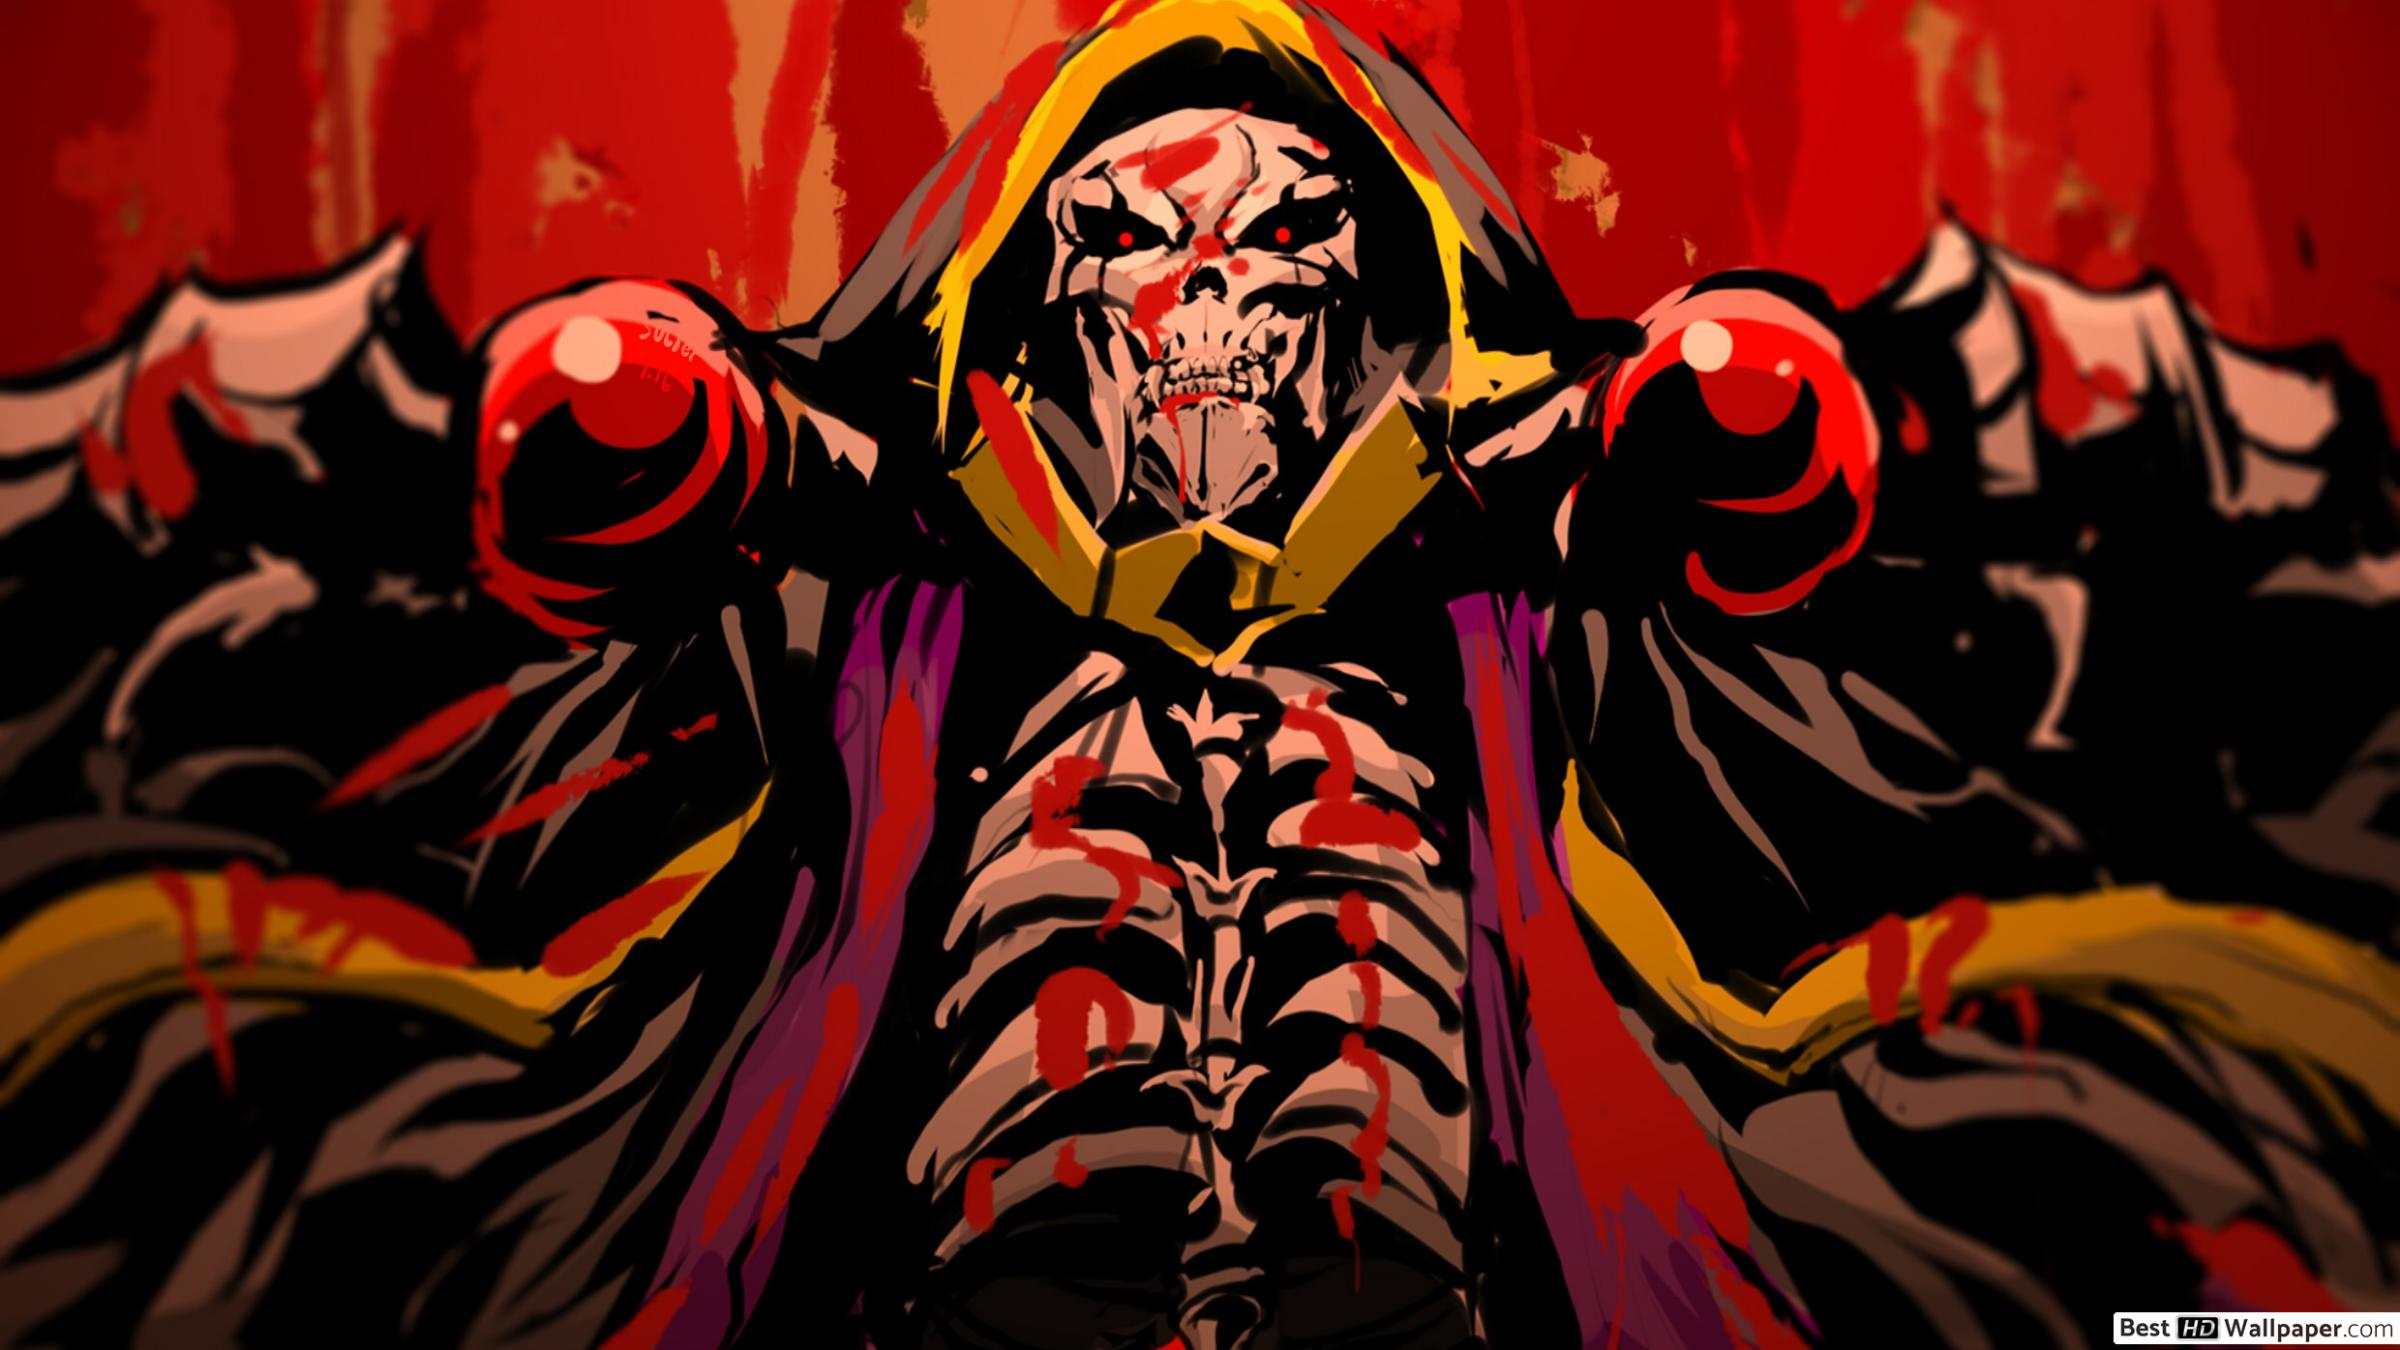 Download Ainz Ooal Gown From Overlord Wallpaper Overlord Art Ainz Ooal Gown 965573 Hd Wallpaper Backgrounds Download